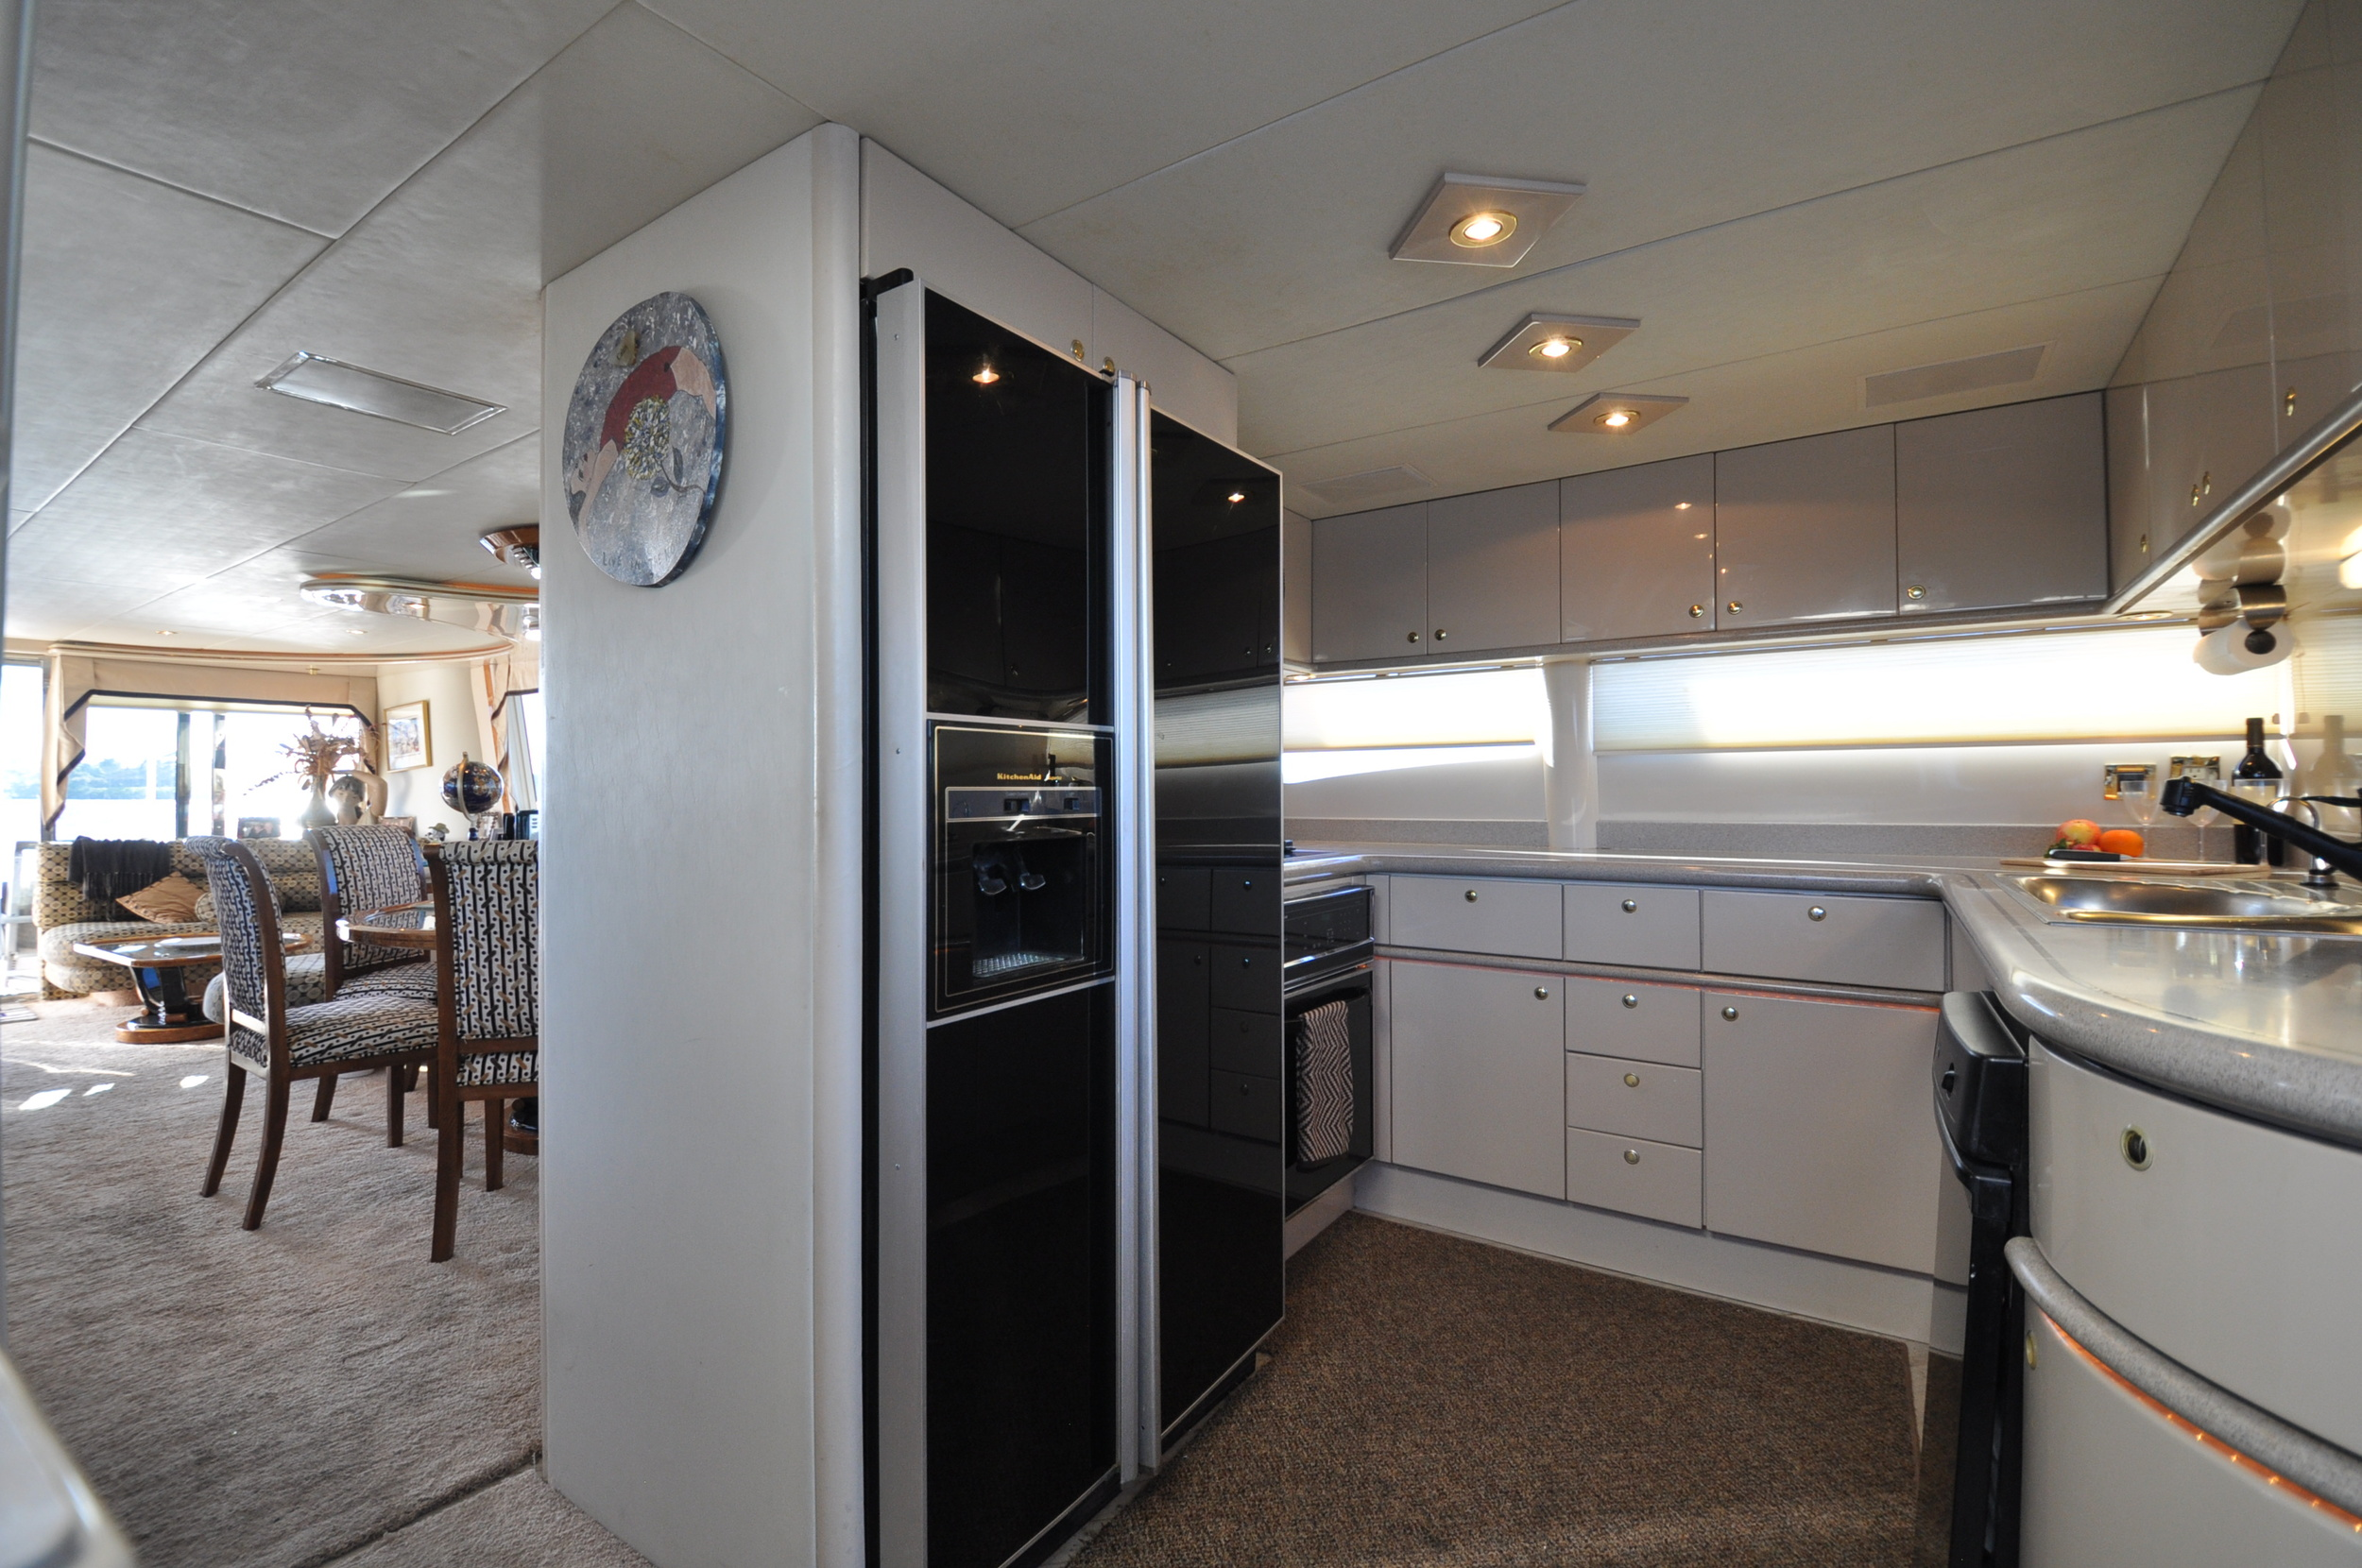 21 - entering galley looking aft.JPG